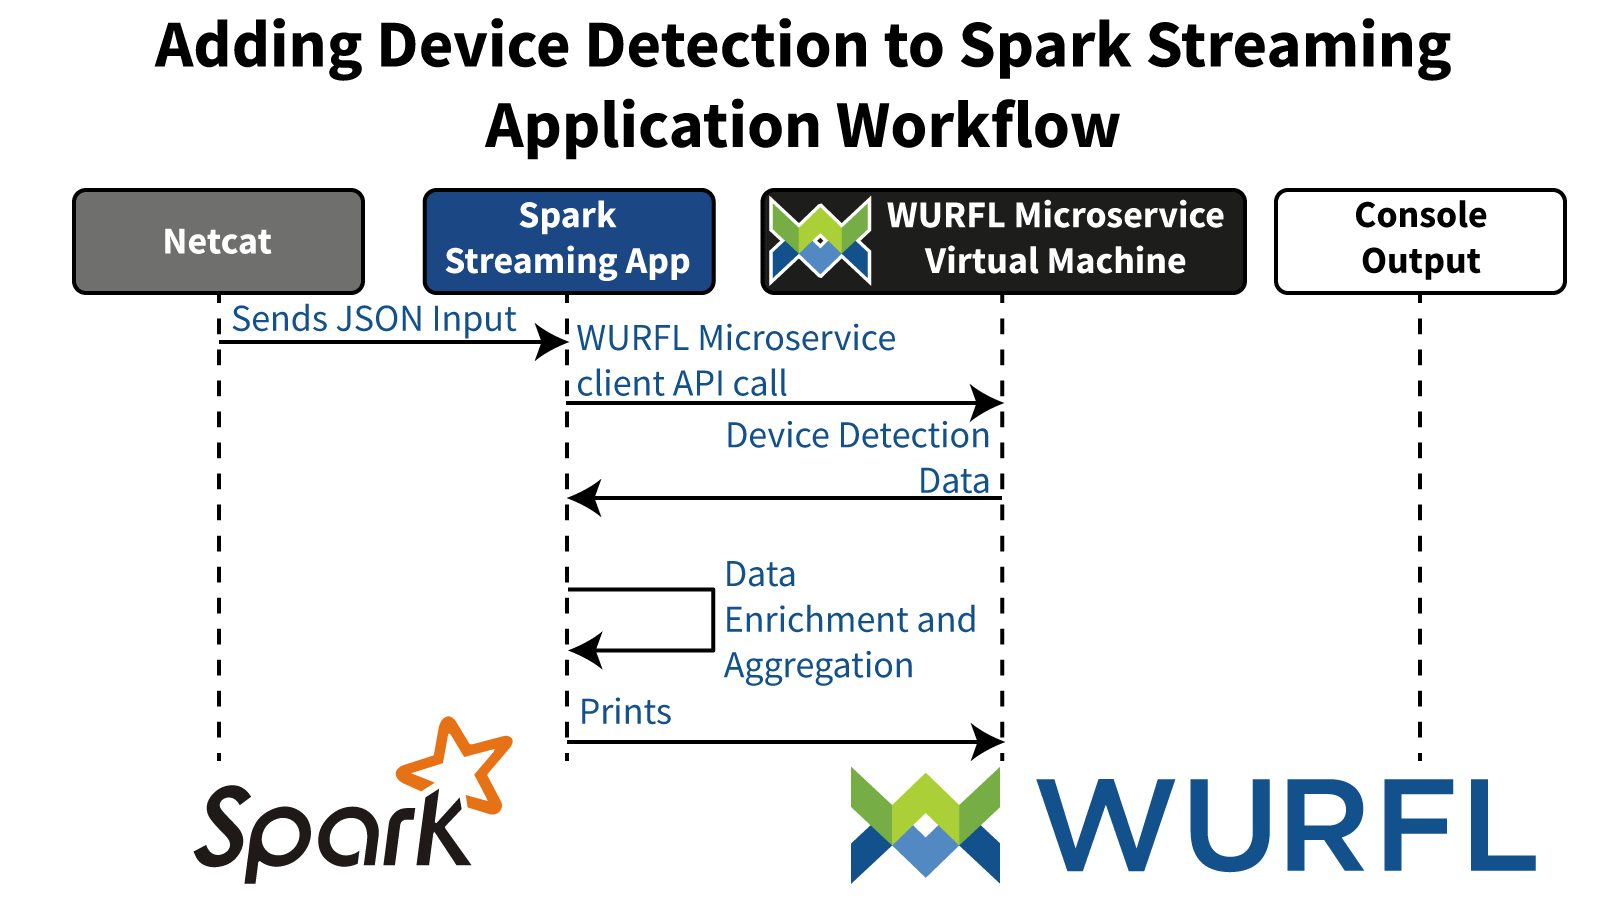 Pyspark Device Detection Workflow